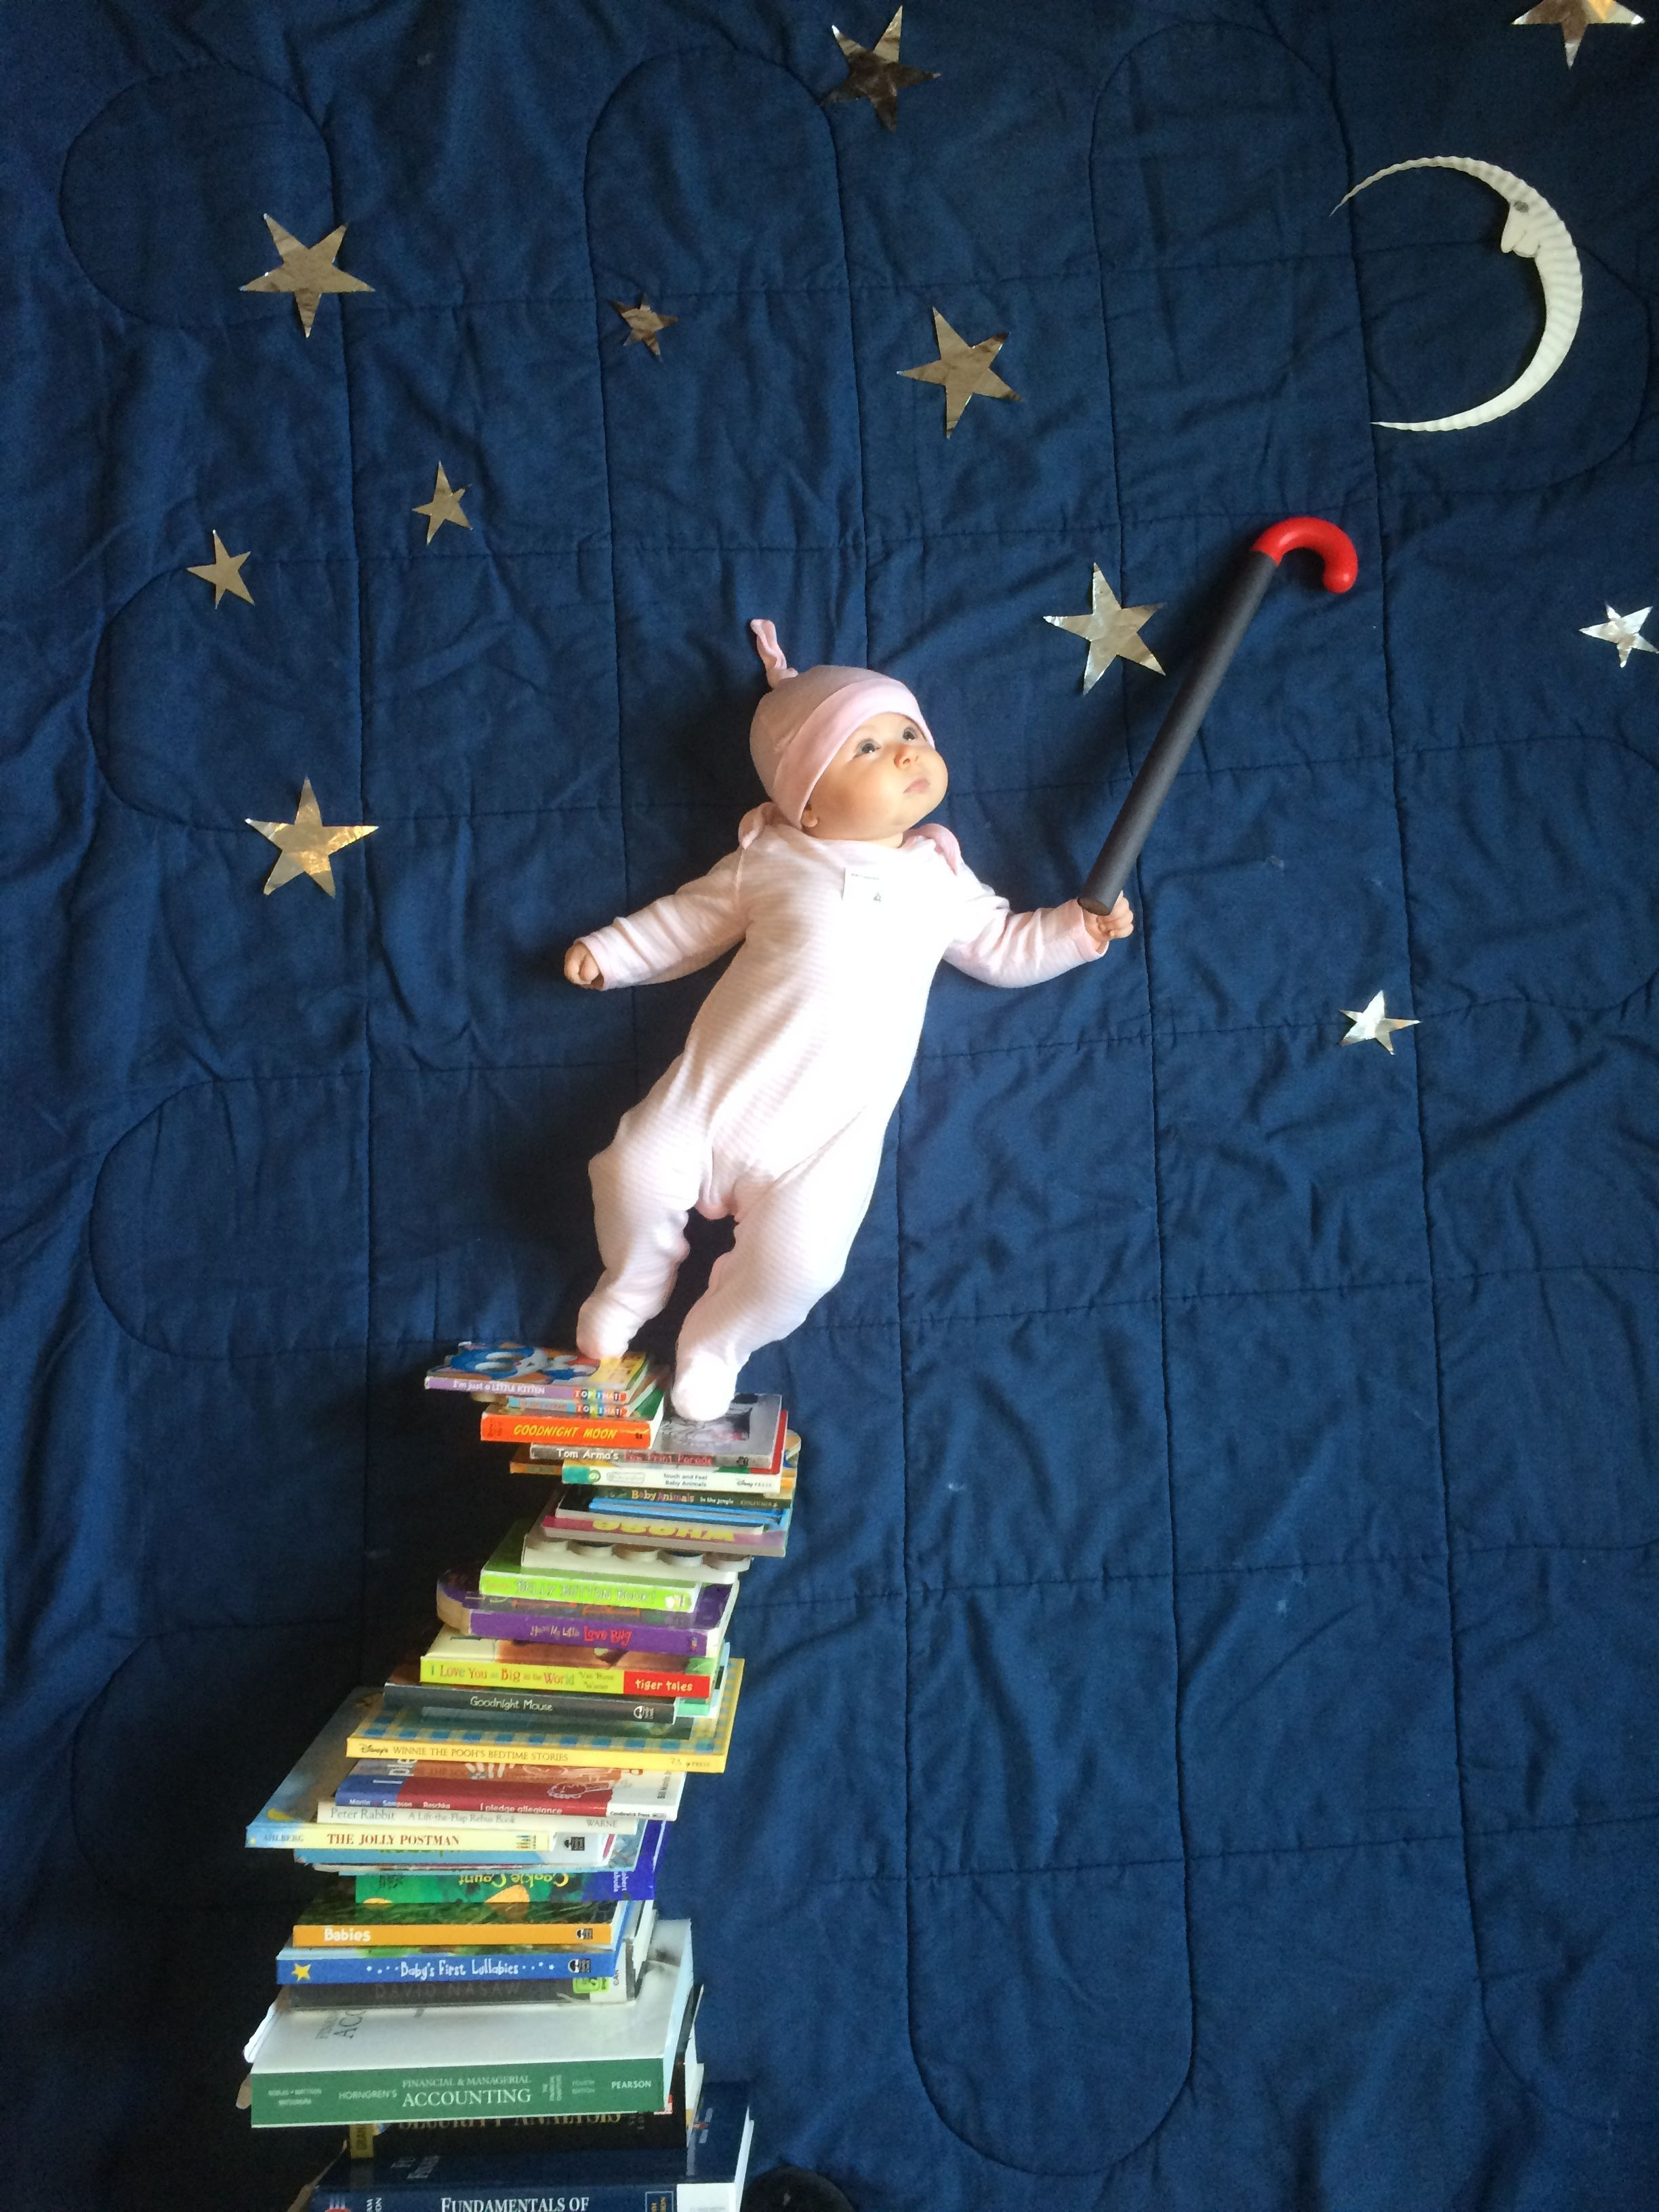 Creative Baby Photos Photography From The Ceiling Bebes Bebes Menino Alayna Cook Blogger In 2020 Baby Boy Photography Baby Photoshoot Girl Baby Photoshoot